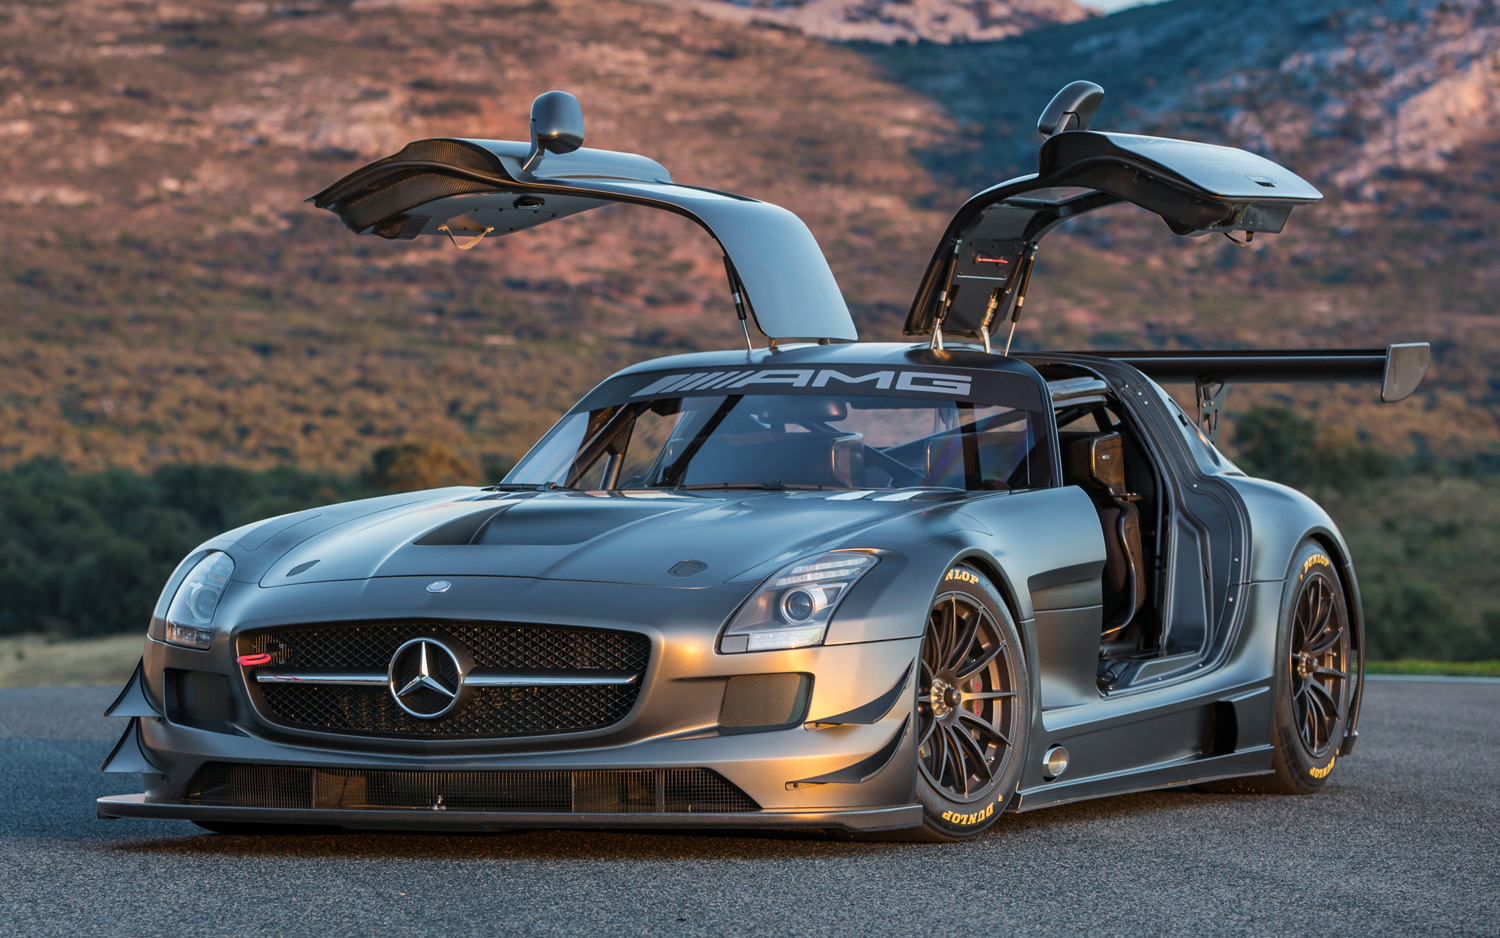 mercedes benz amg launches 45th anniversary sls amg gt3 racer [ 1500 x 938 Pixel ]